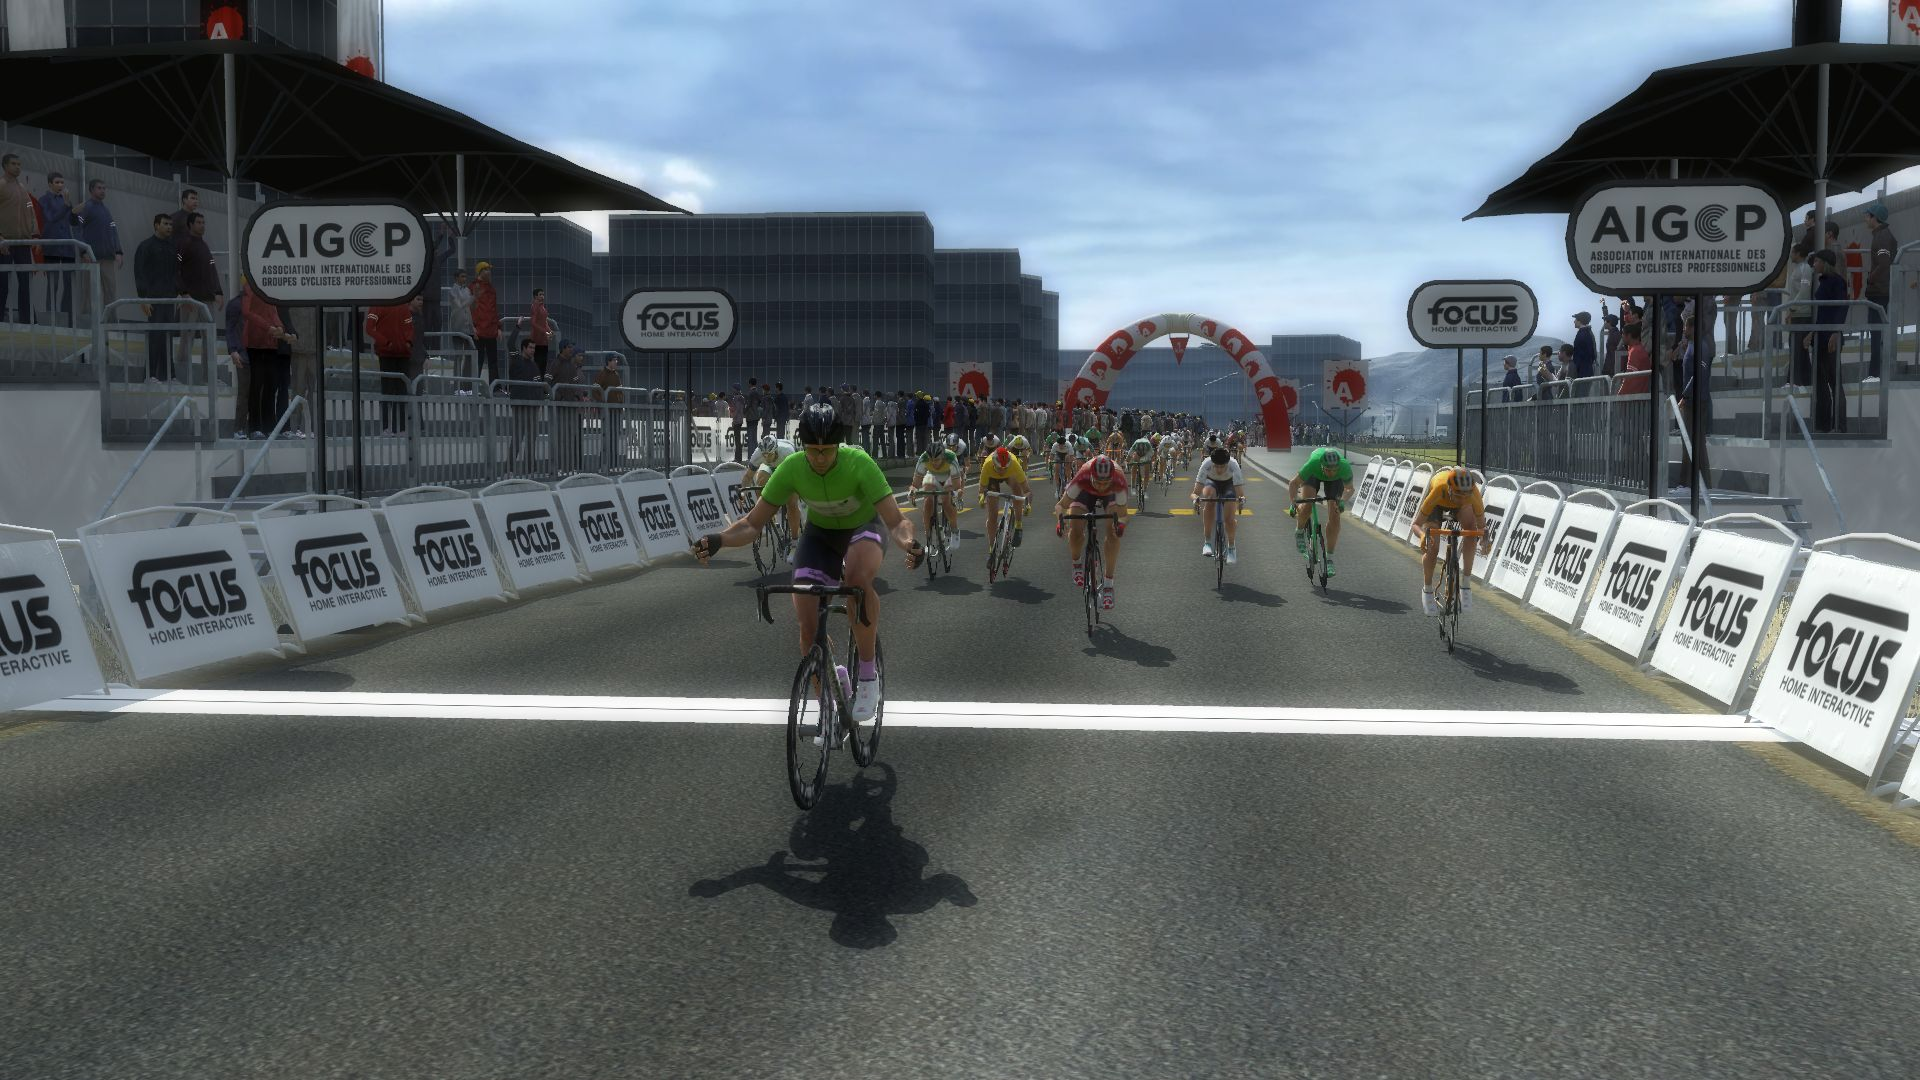 pcmdaily.com/images/mg/2019/Races/C2HC/Eritrea/TOES2%2019.jpg